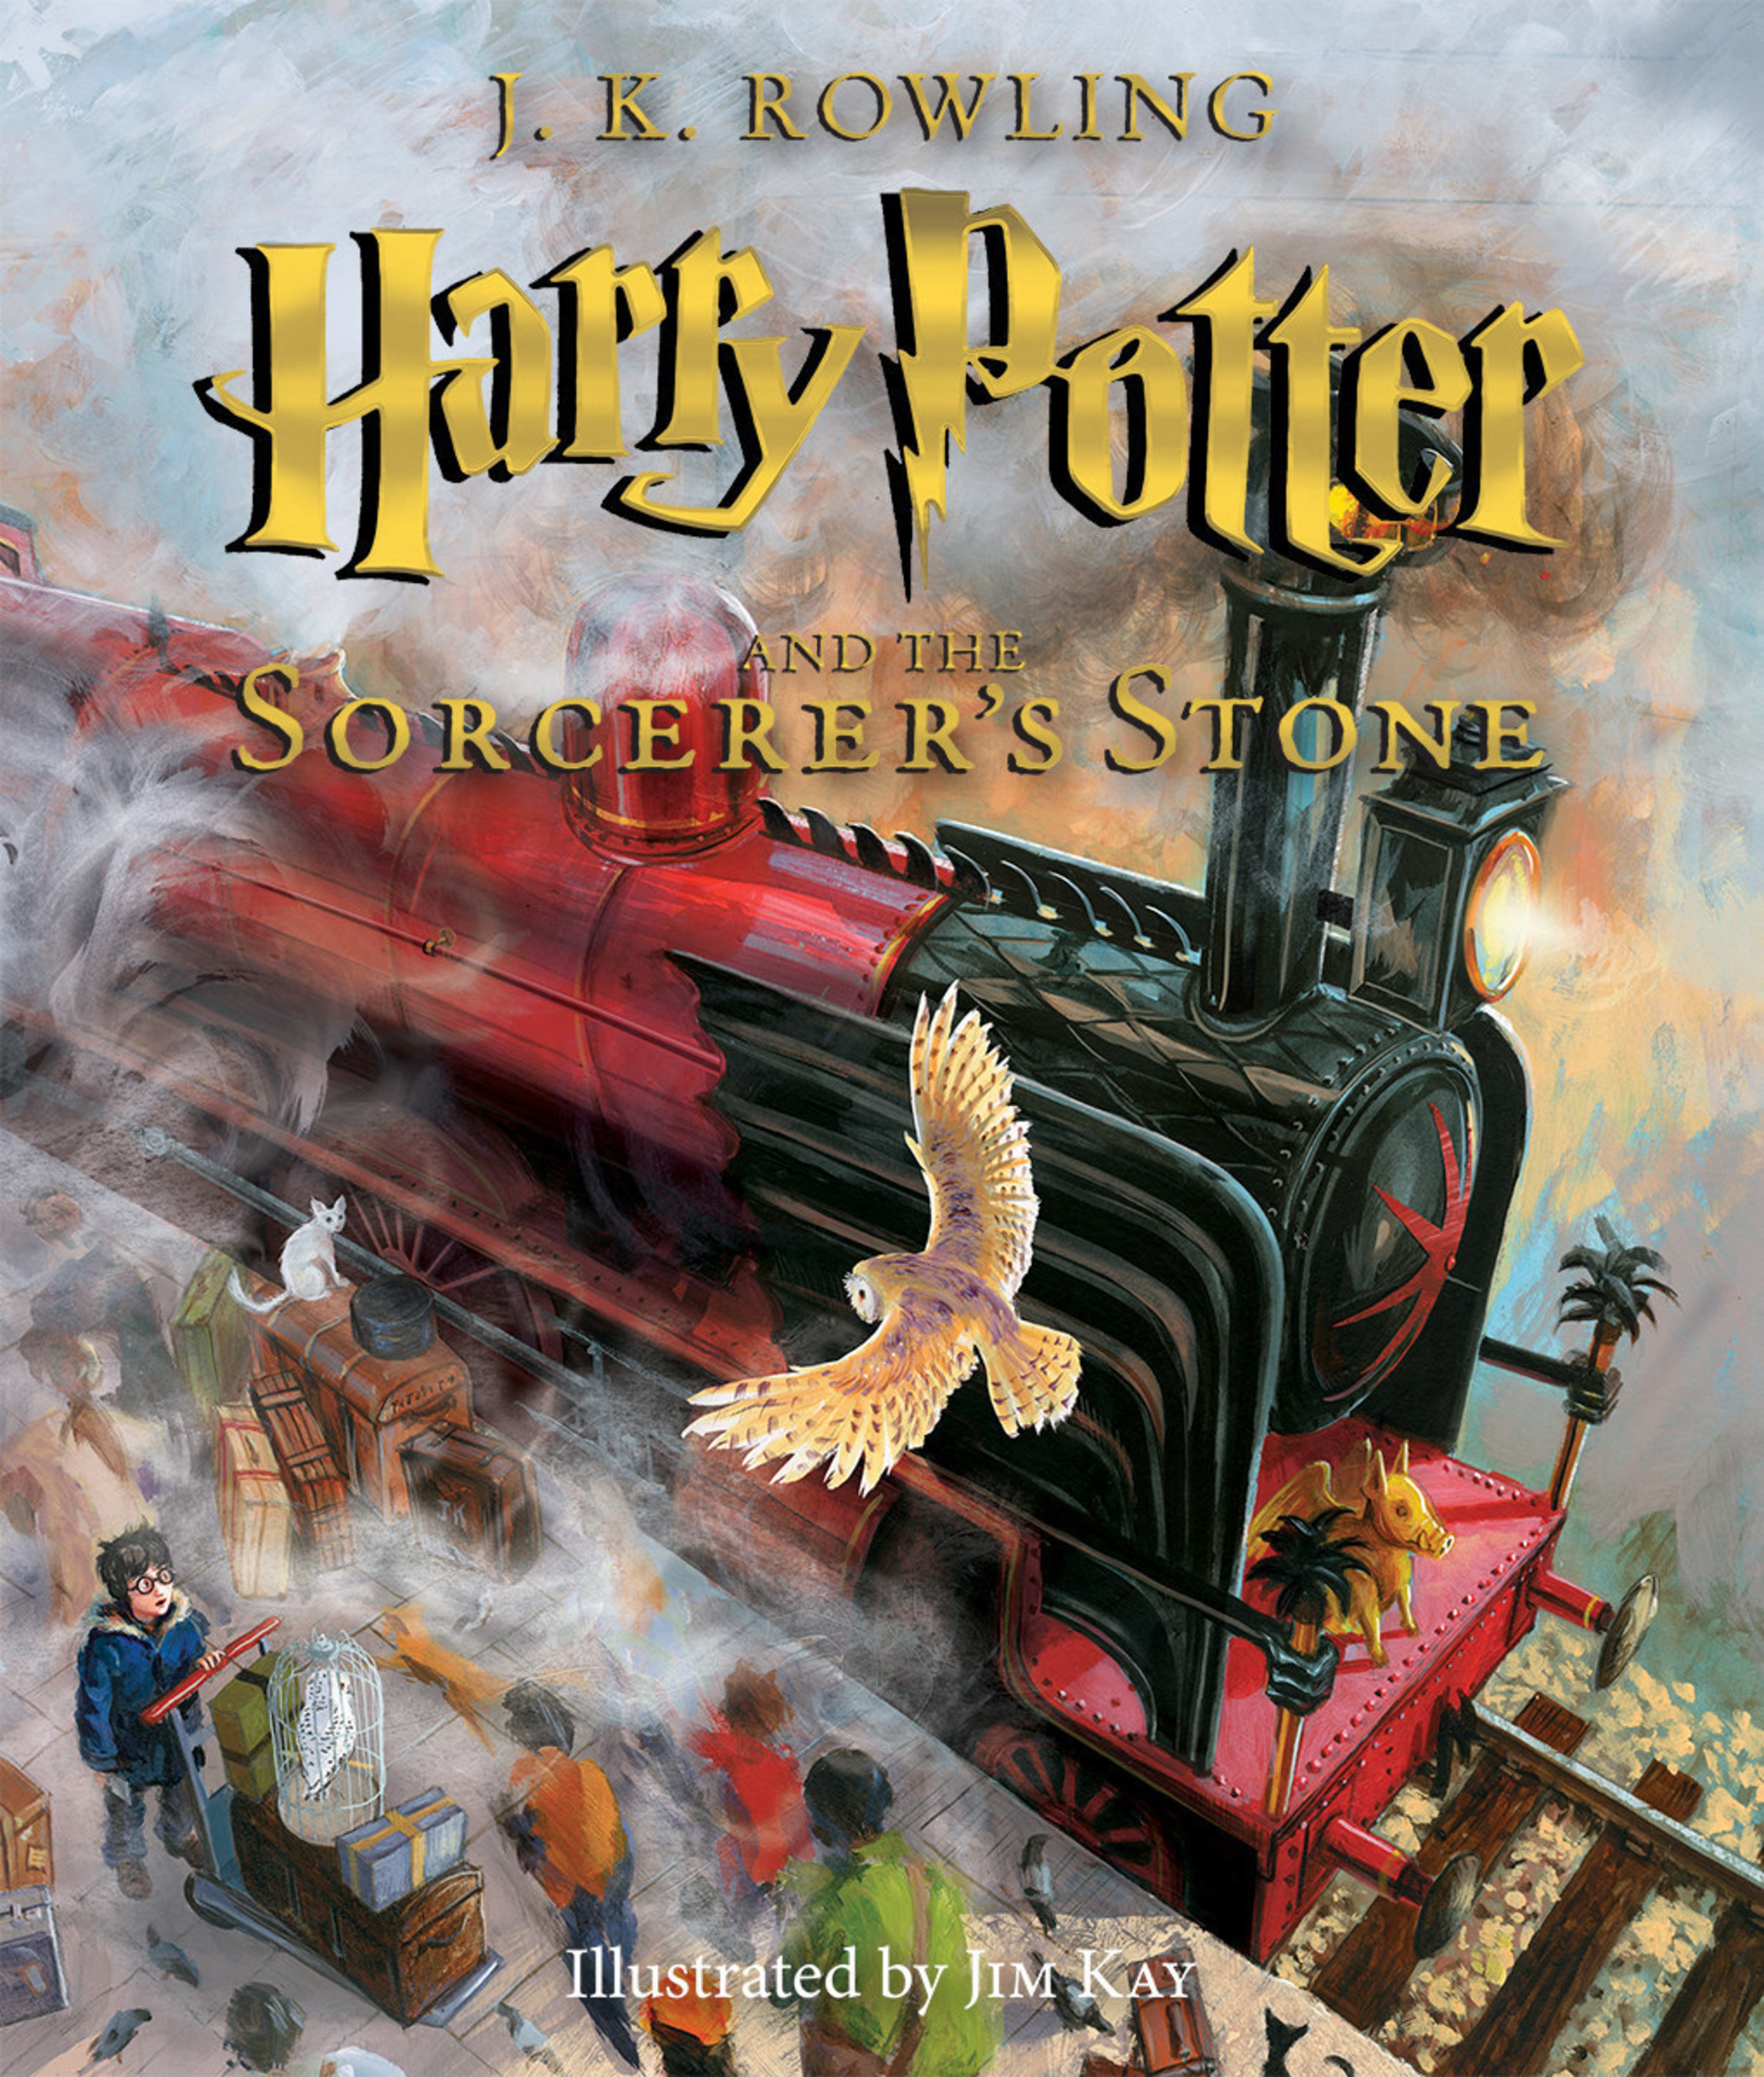 Scholastic Releases Exclusive Cover of Upcoming Illustrated Edition of J.K. Rowling's Harry Potter and the Sorcerer's Stone